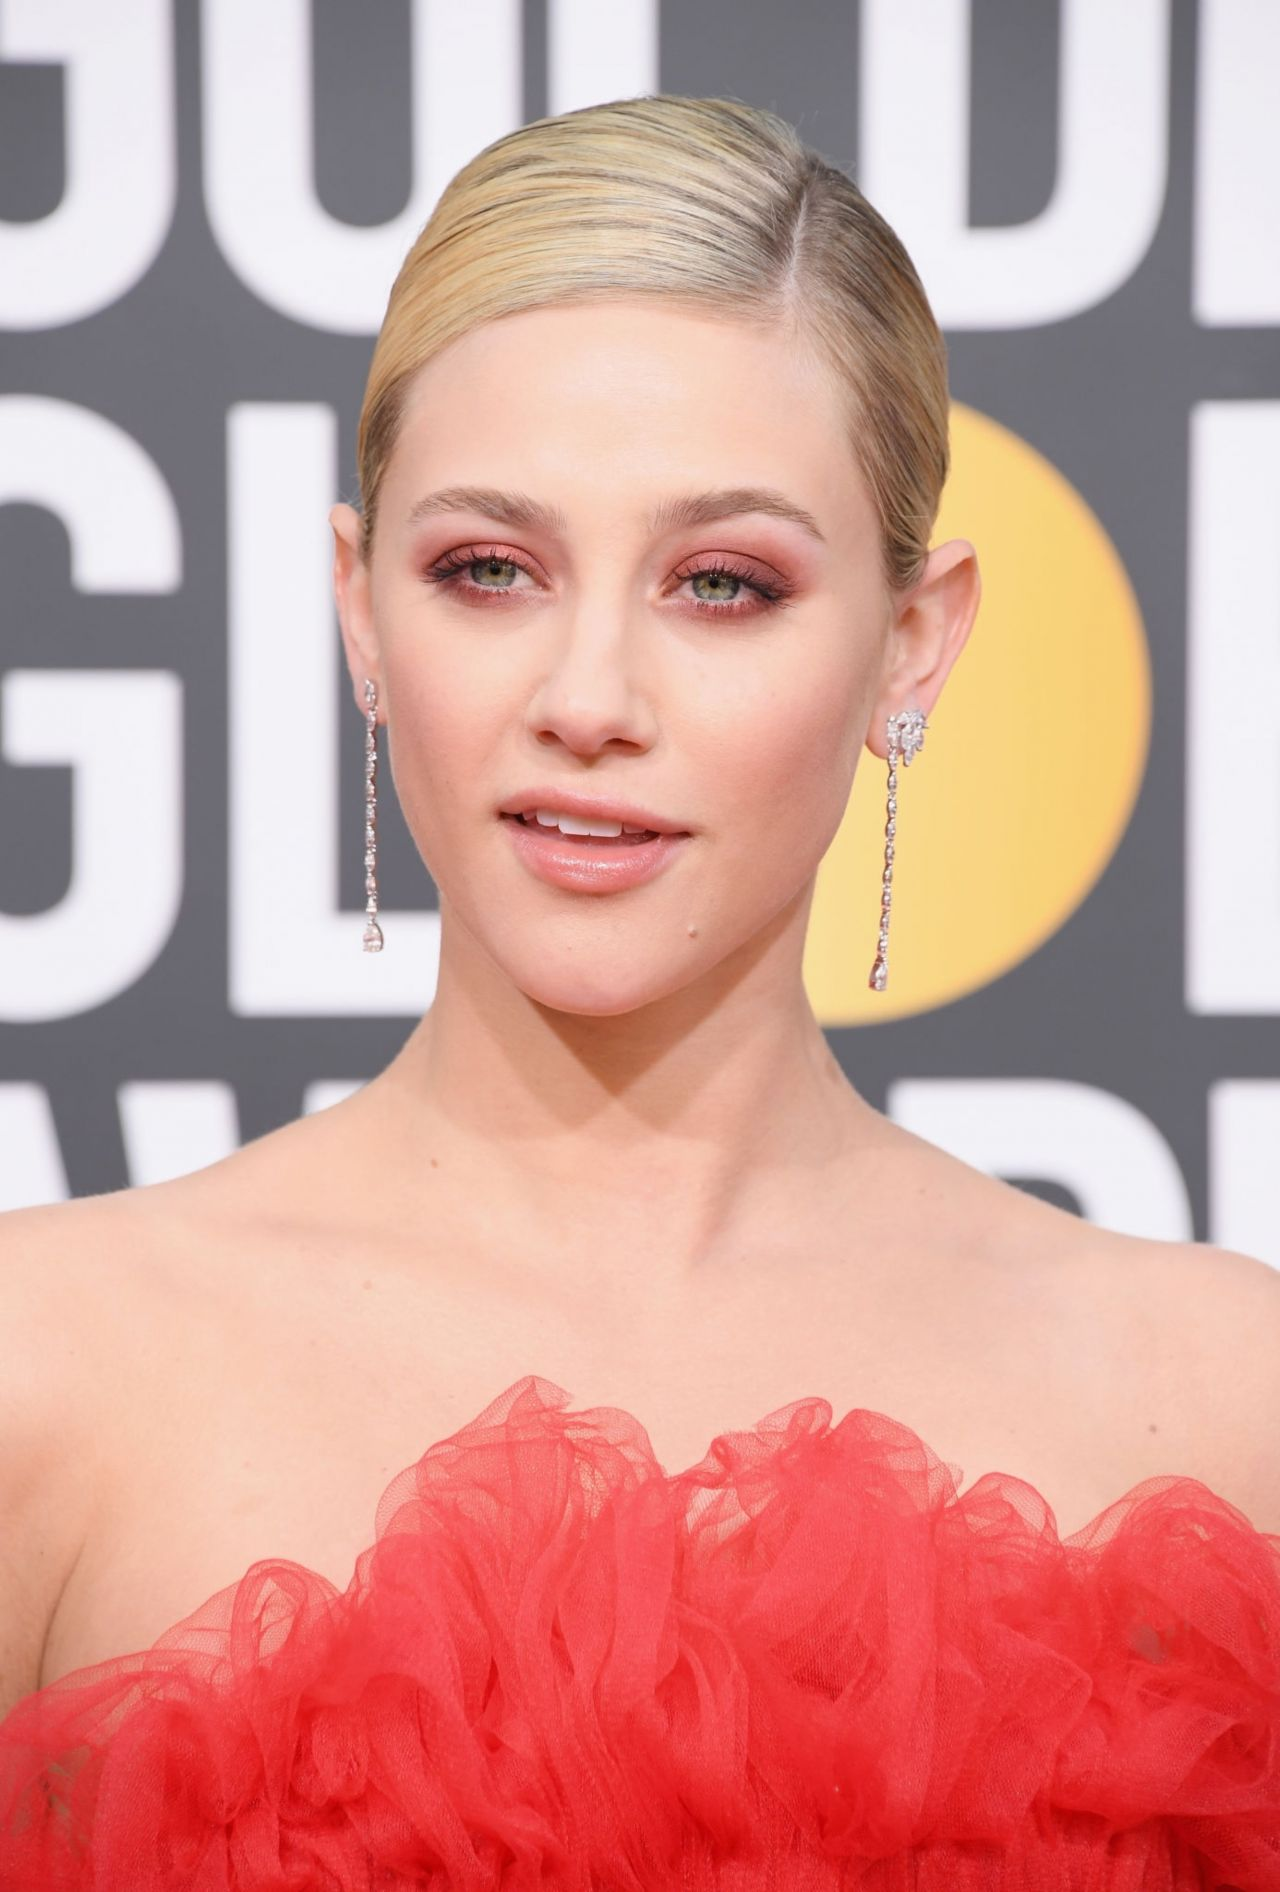 lili-reinhart-2019-golden-globe-awards-red-carpet-1